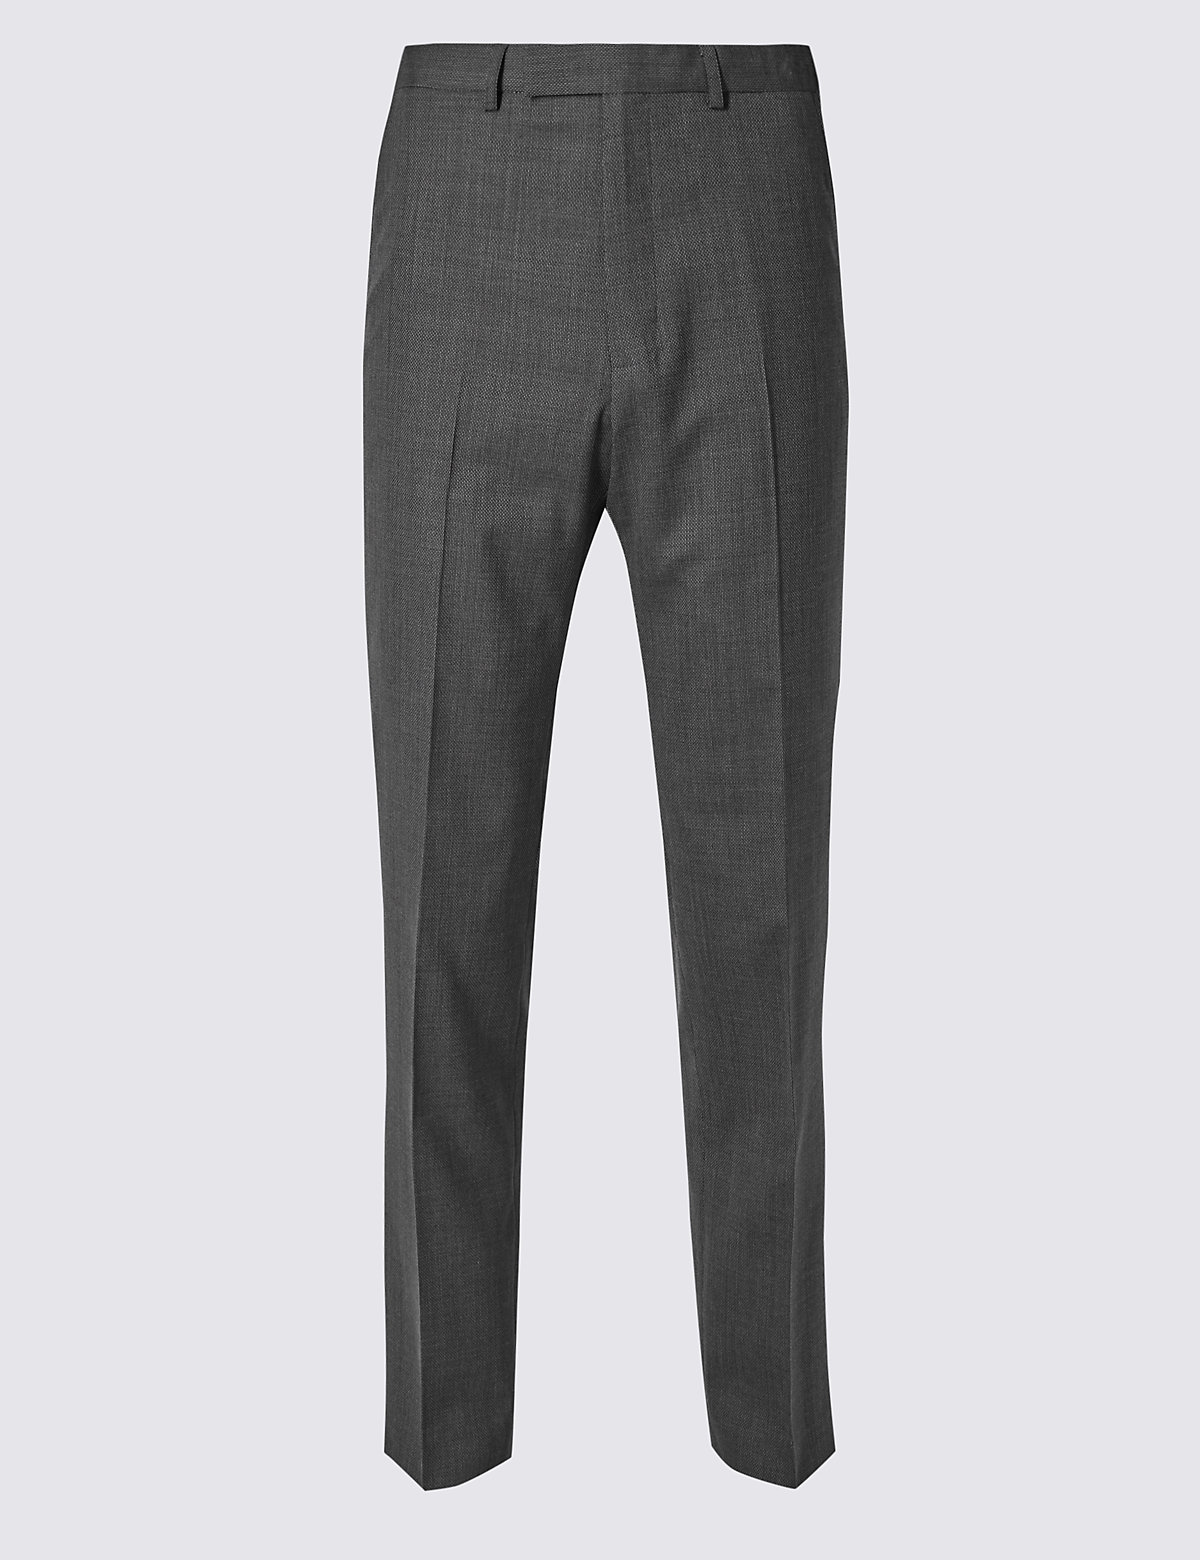 Marks & Spencer Grey Textured Regular Fit Trousers